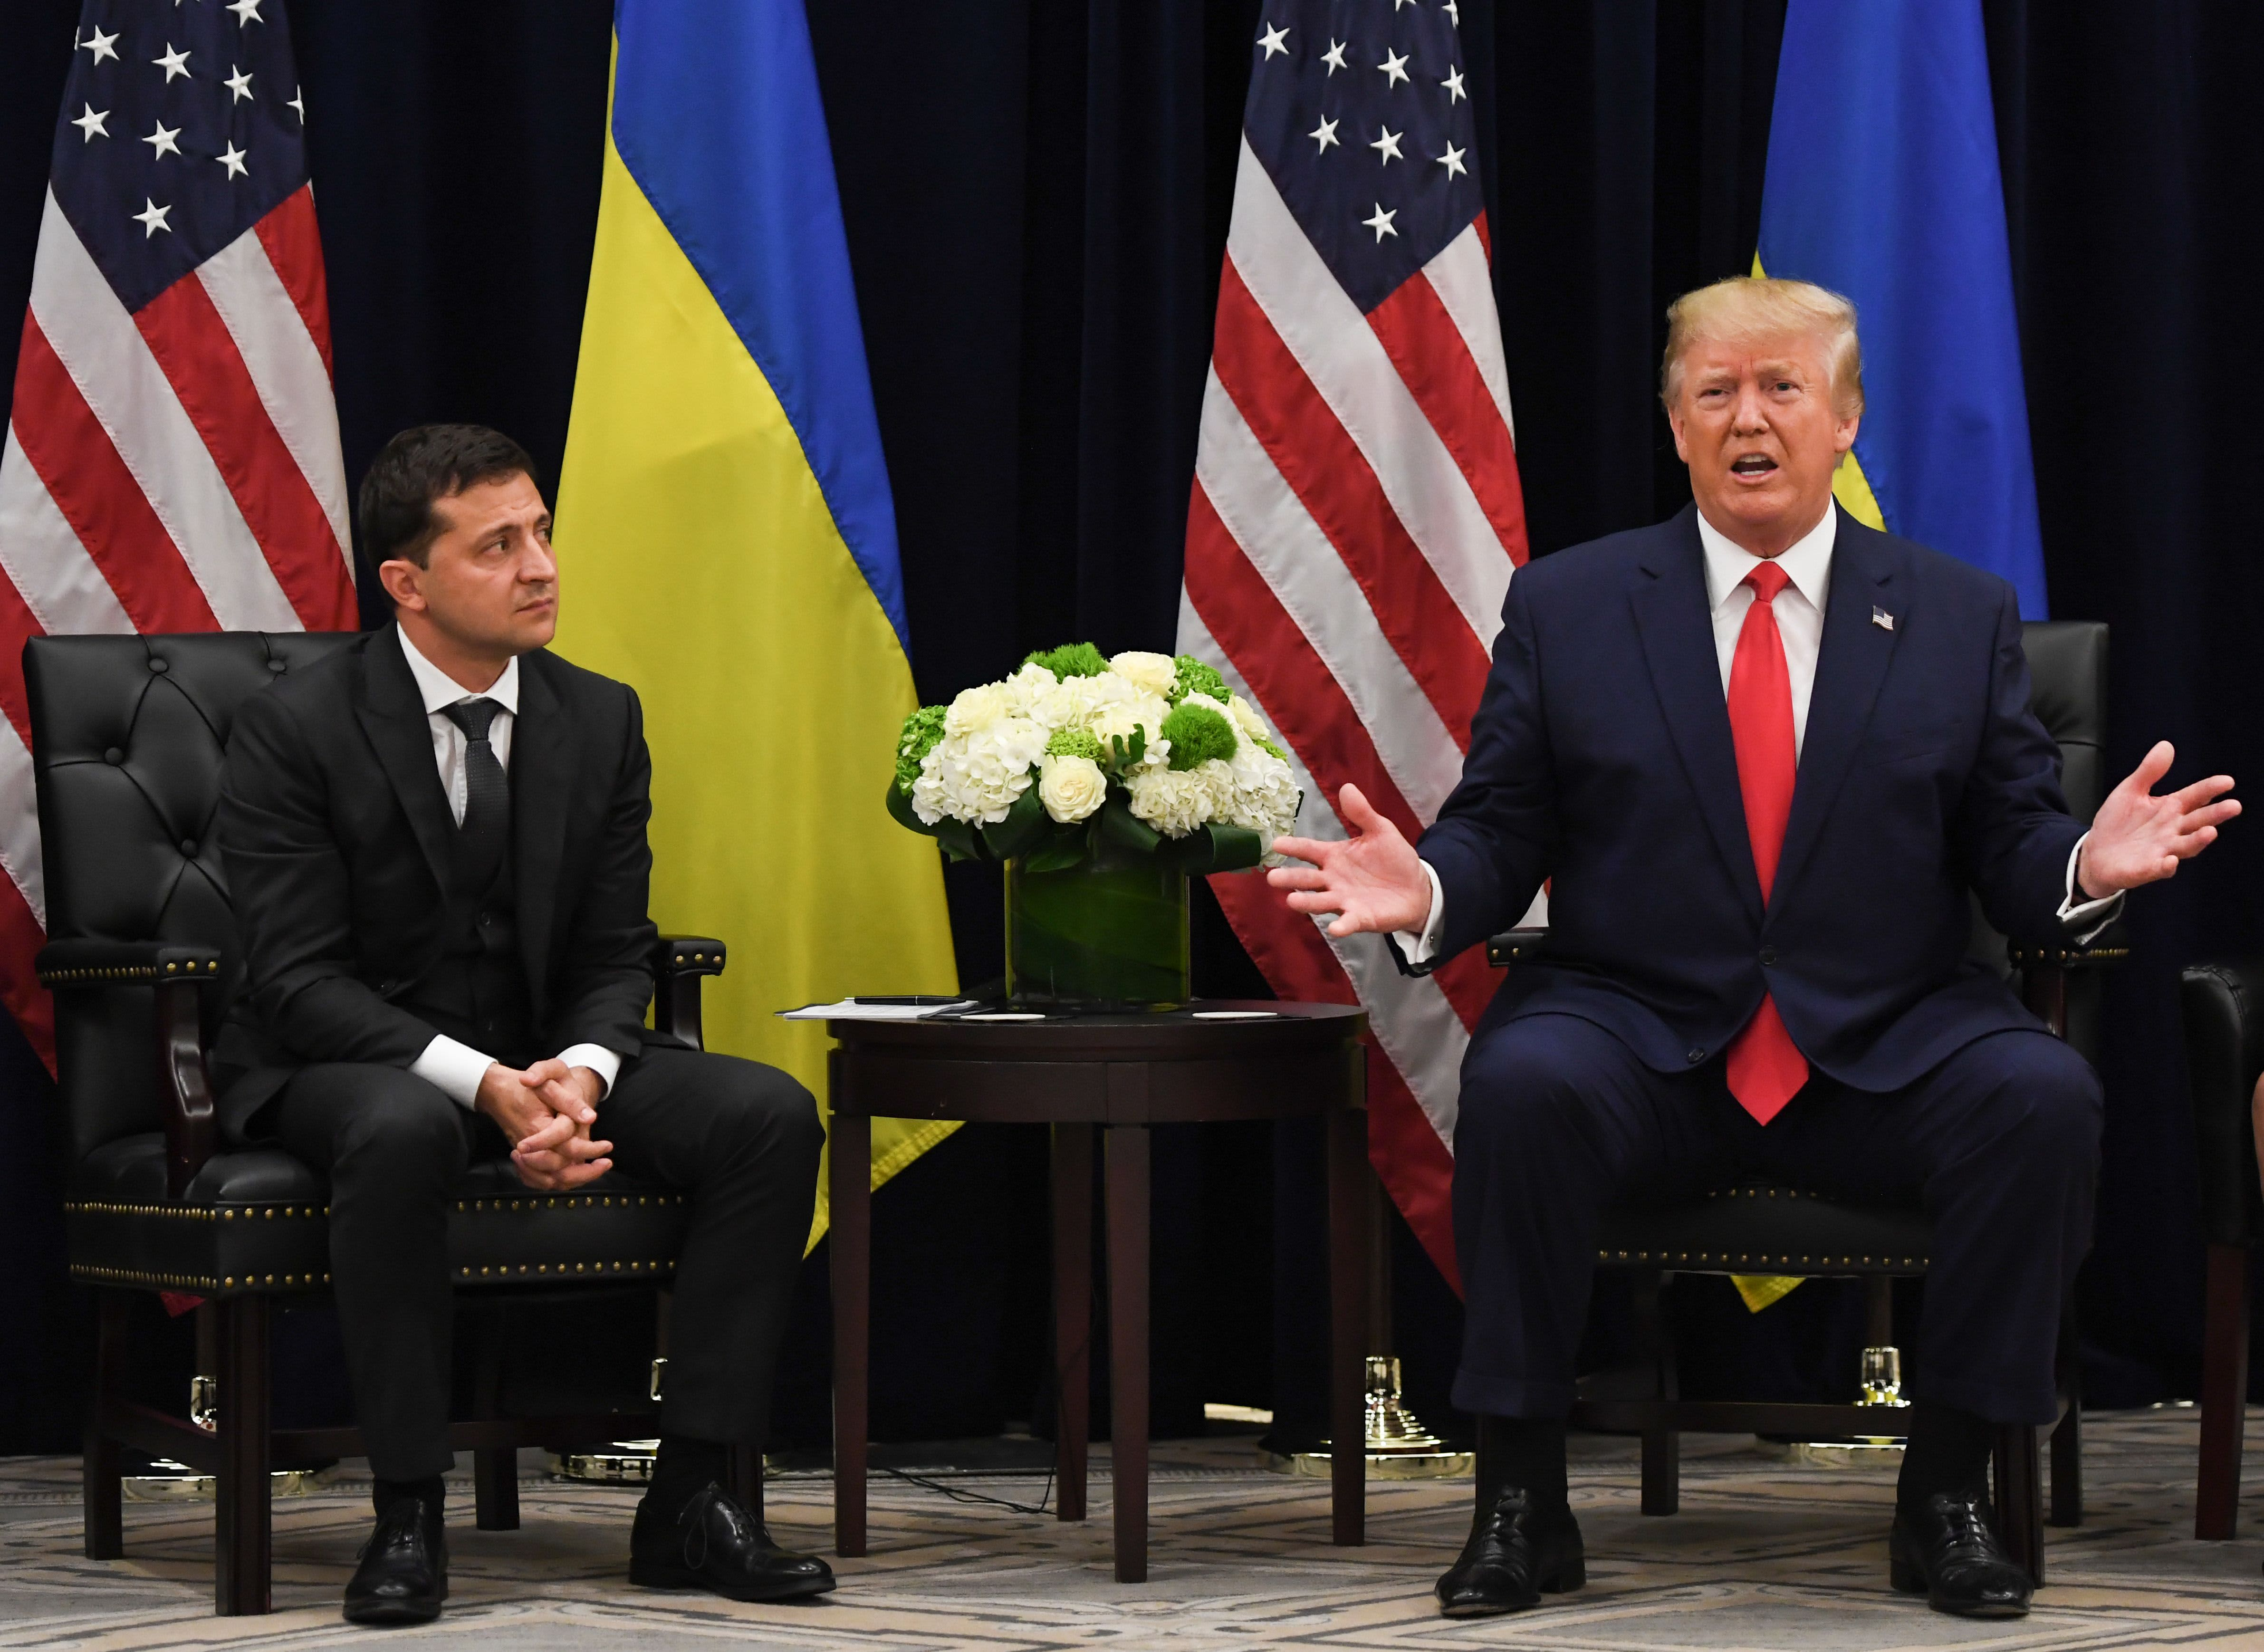 Ukraine's president says there was no blackmail in Trump call